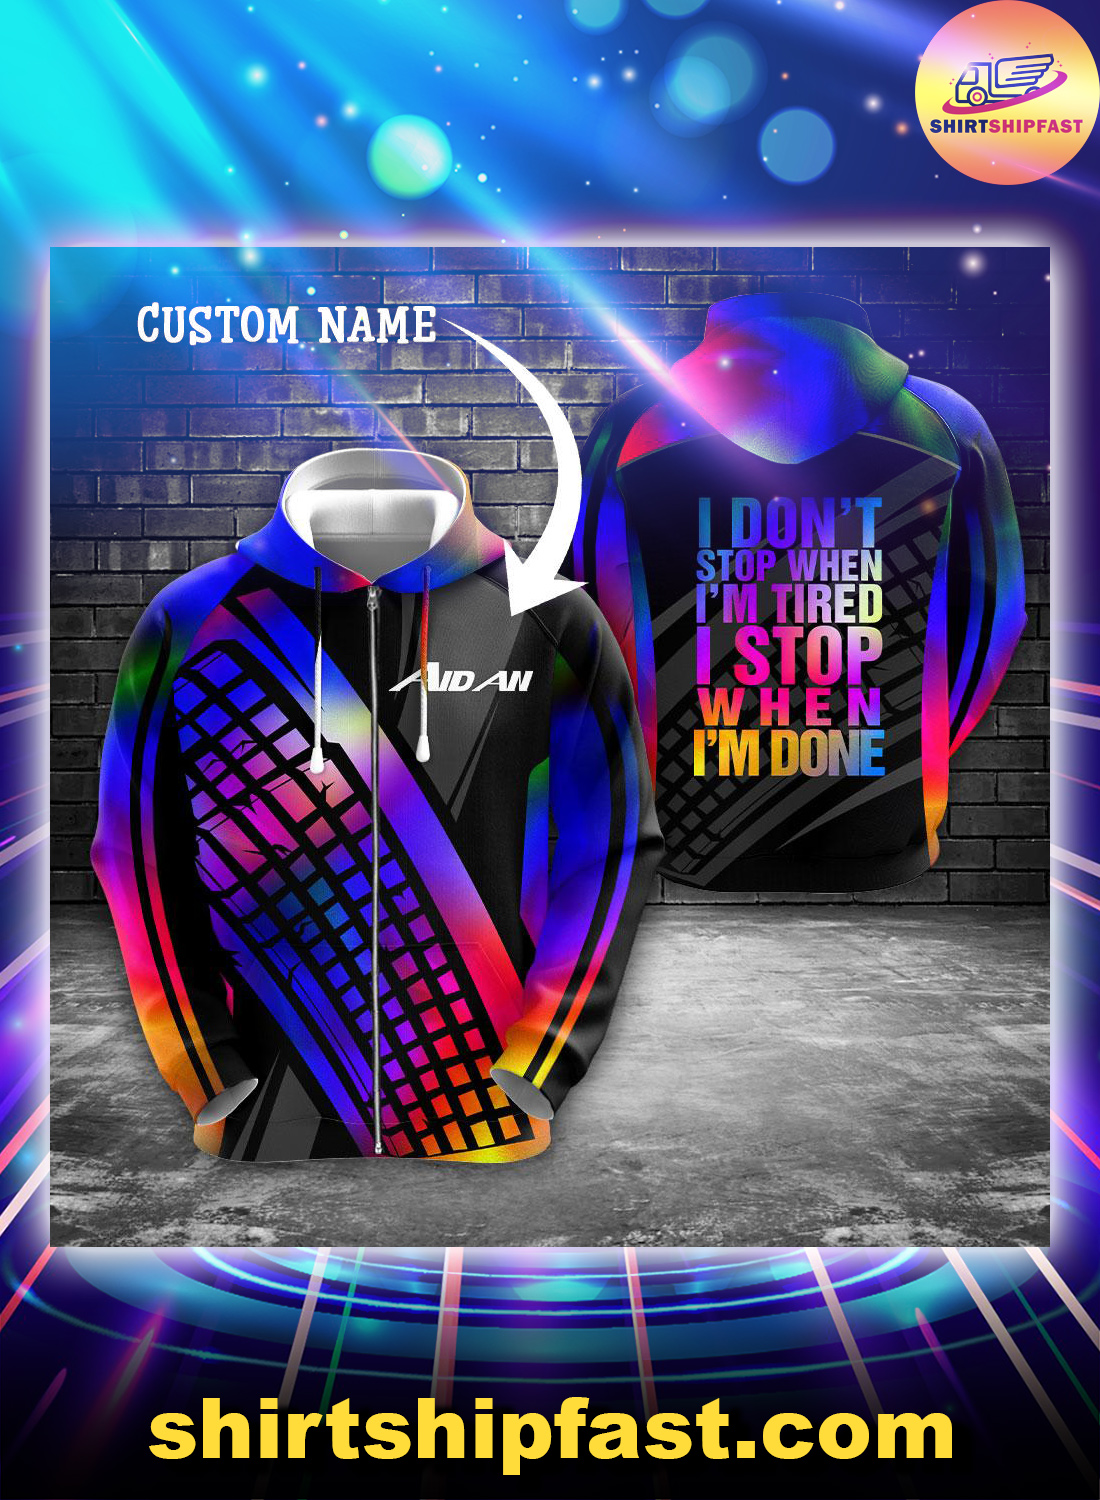 PC gamer I don't stop when I'm tired I stop when I'm done personalized custom name 3d zip hoodie